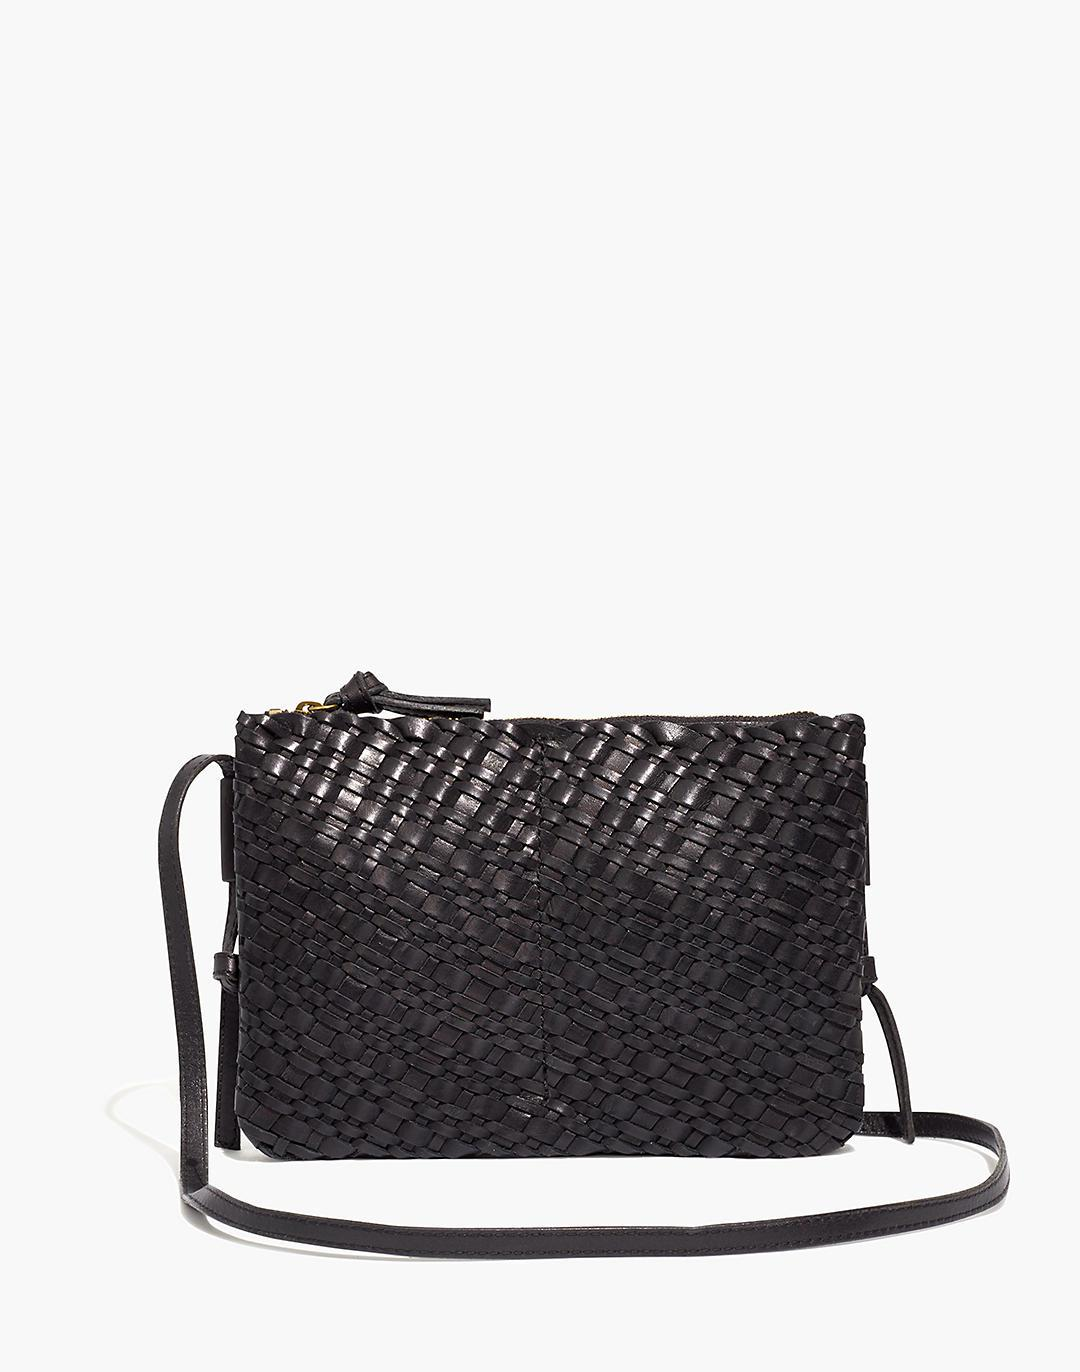 The Knotted Crossbody Bag in Woven Leather